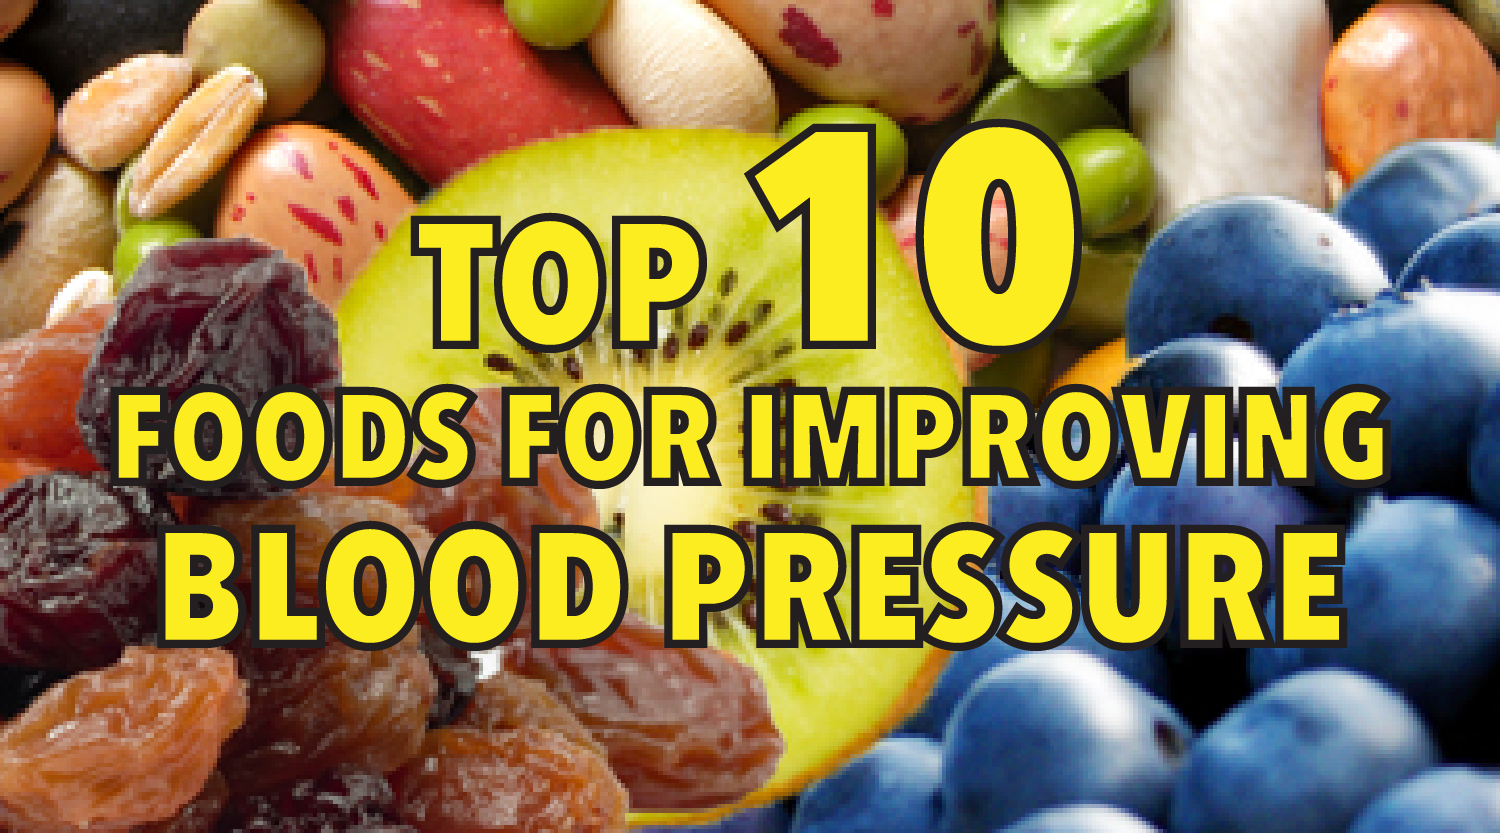 Top 10 foods for improving blood pressure